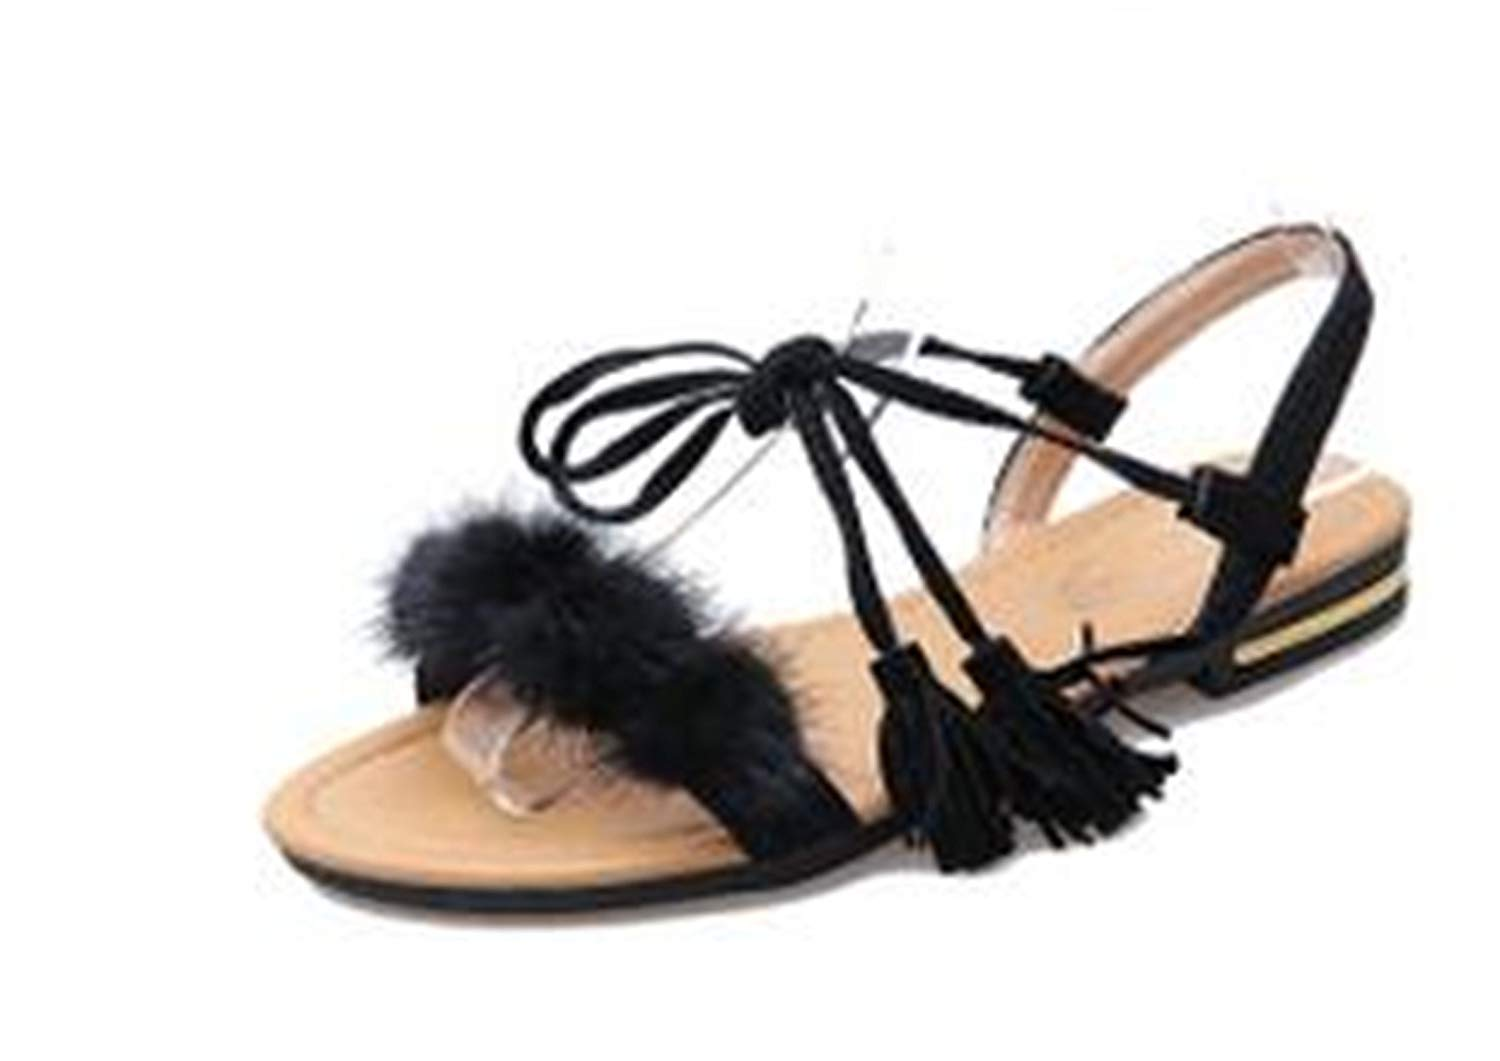 Nerefy Real Fur Ankle Strap Gladiator Sandals Women Flats Summer Shoes Ladies Wedding Beach Sandals